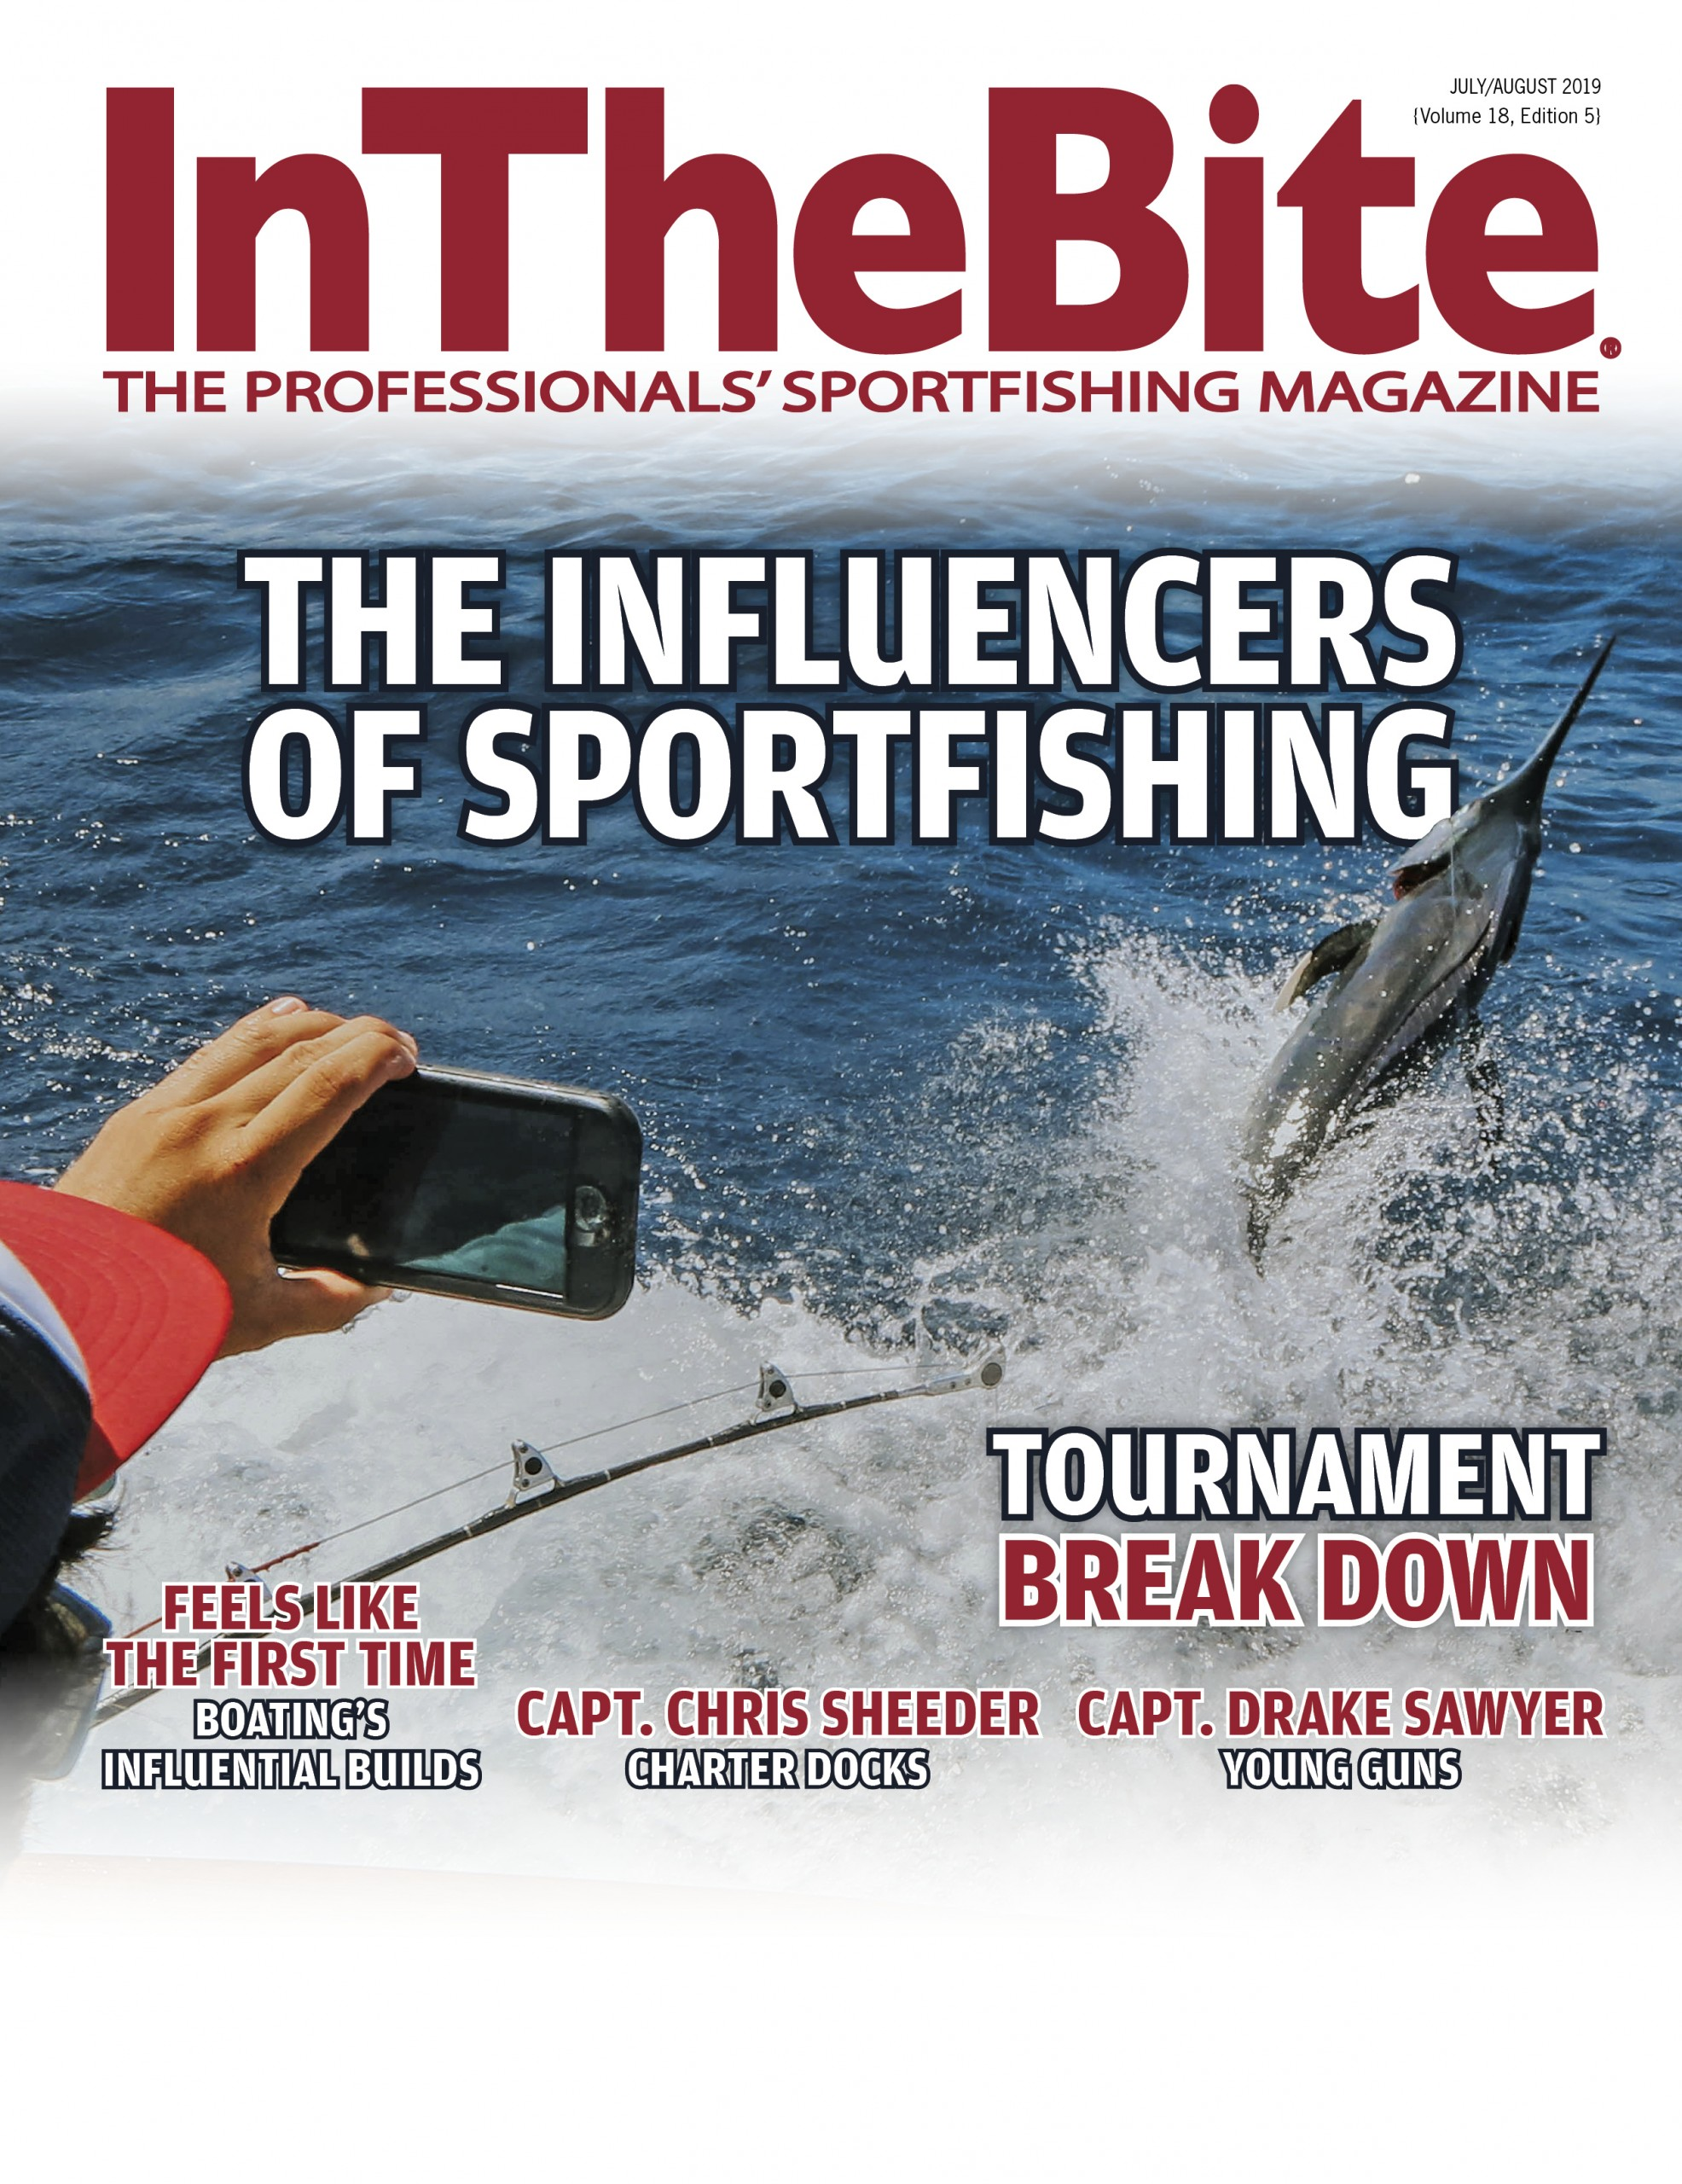 ITB Magazine cover